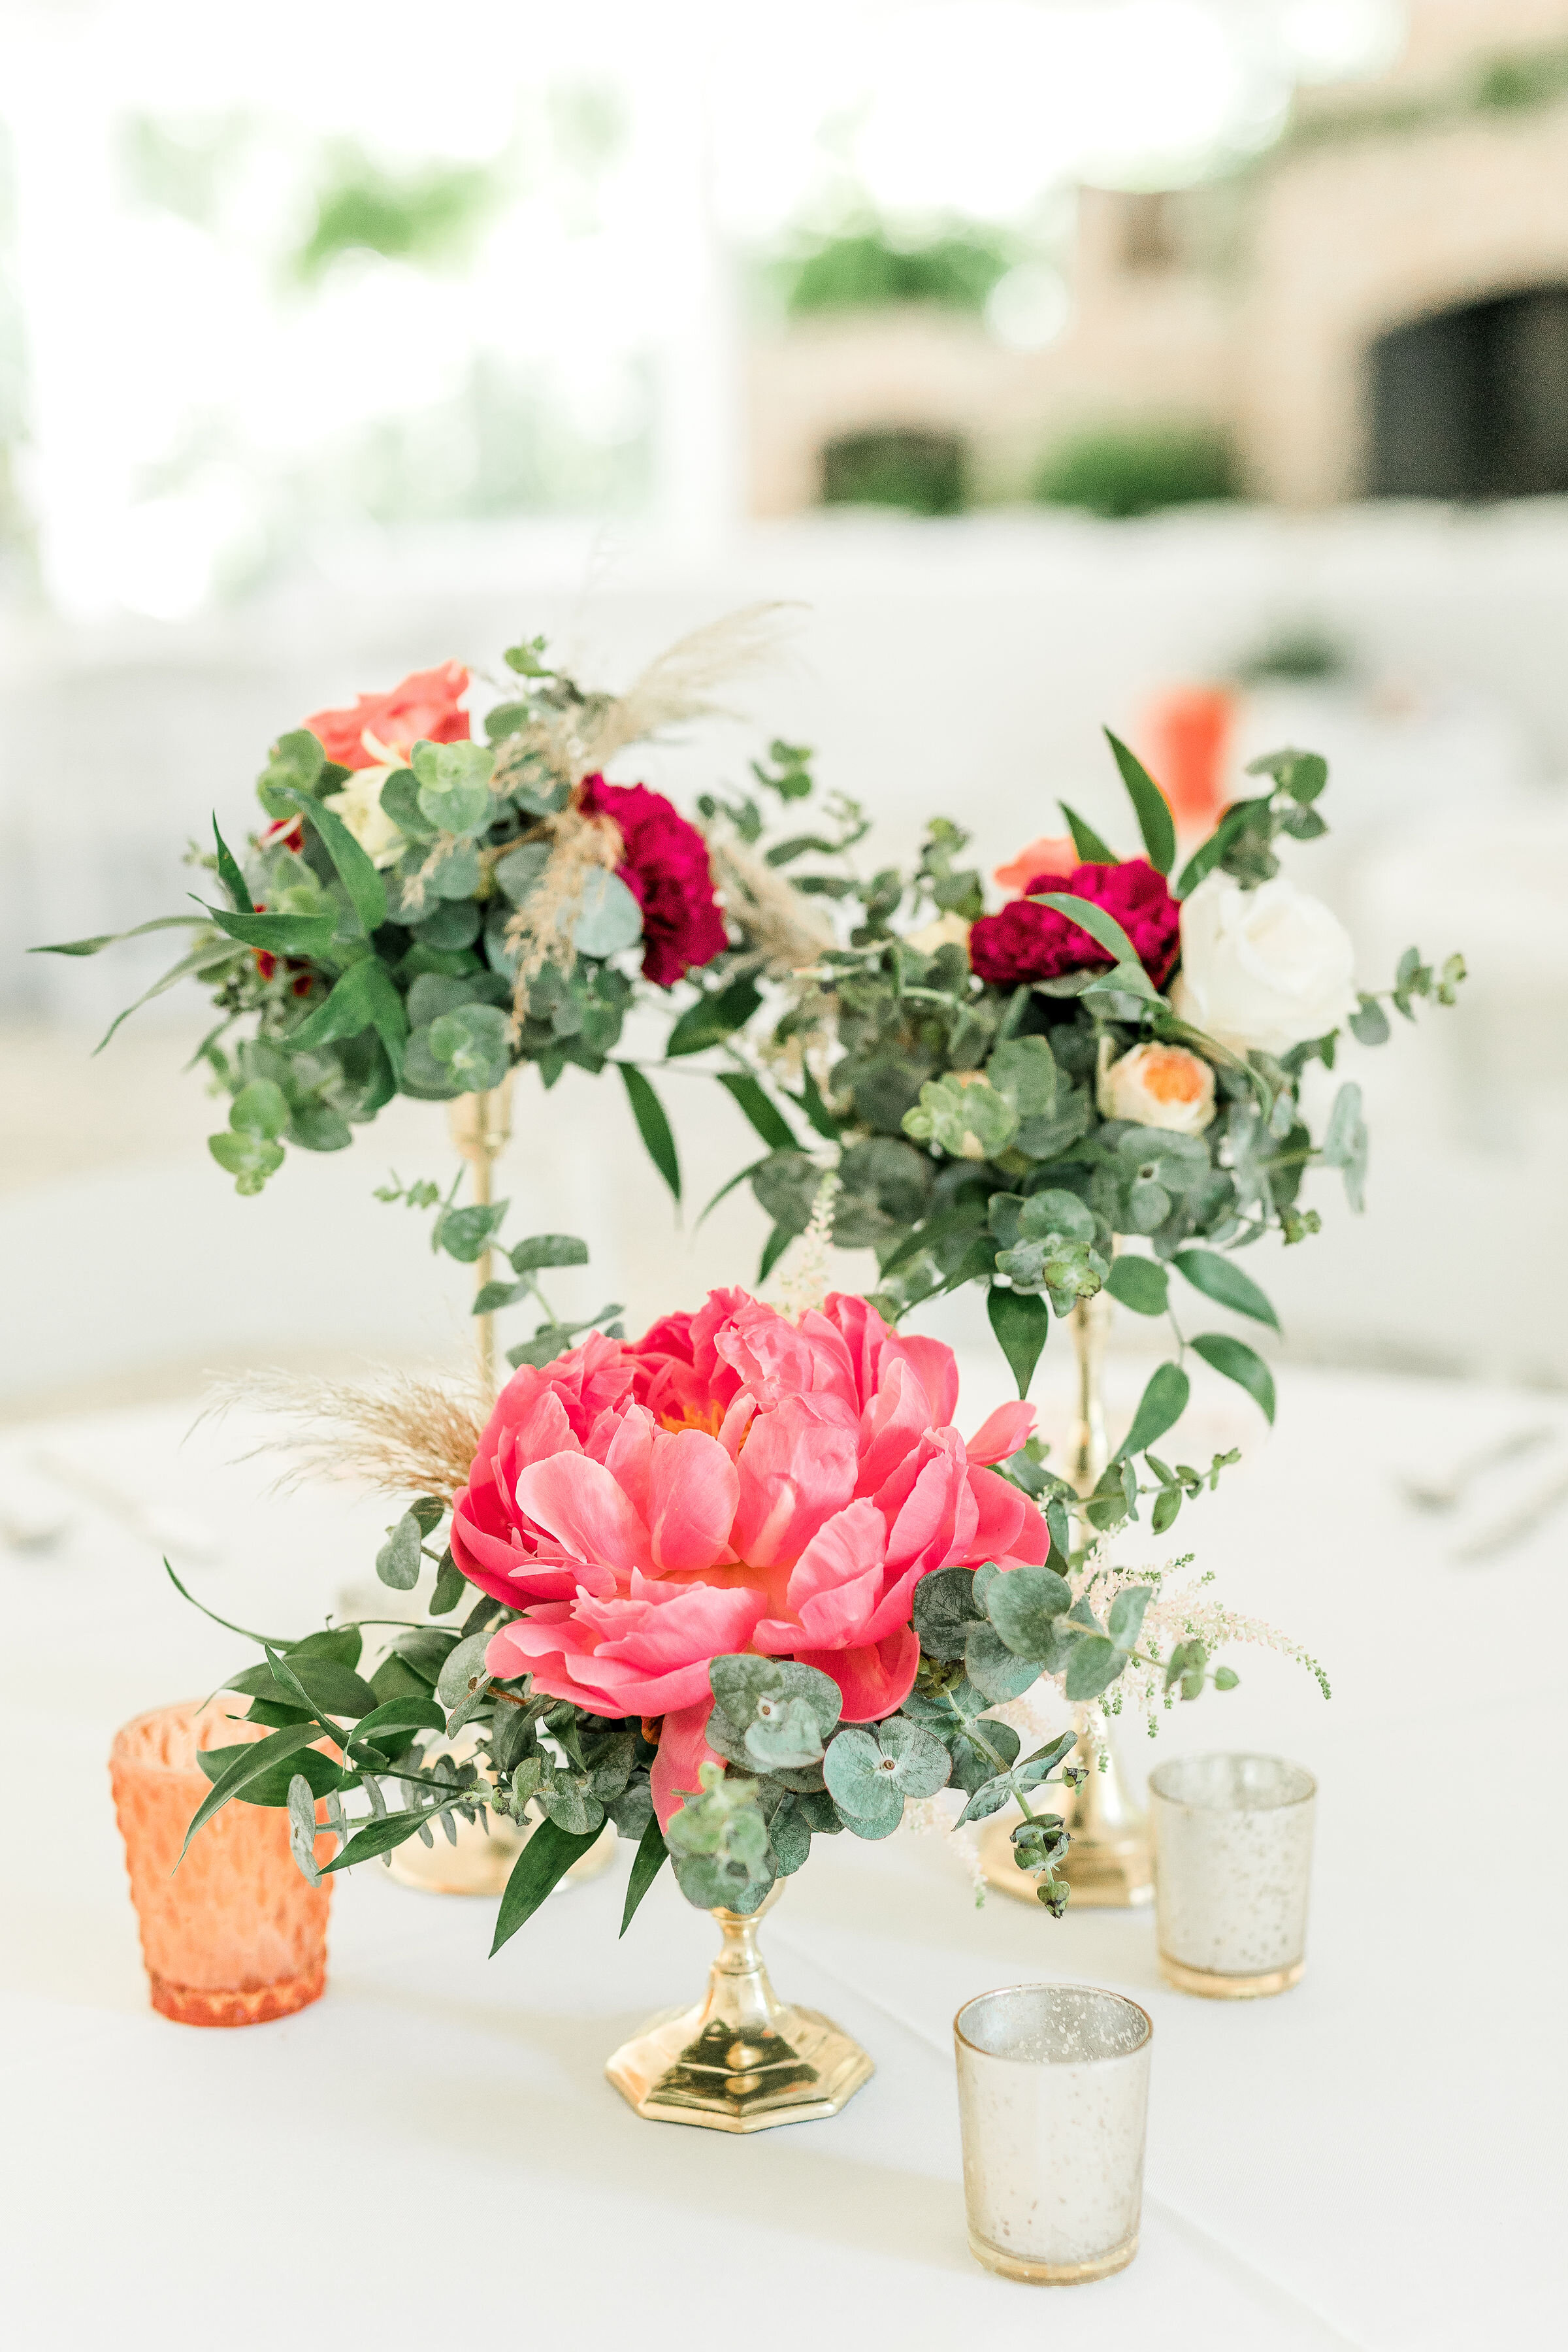 floral-center-pieces-candlestick-center-piece-pink-green-flowers-candle-centerpiece-bright-colors-colorful-wedding-savannah-wedding-mackey-house-wedding.jpg